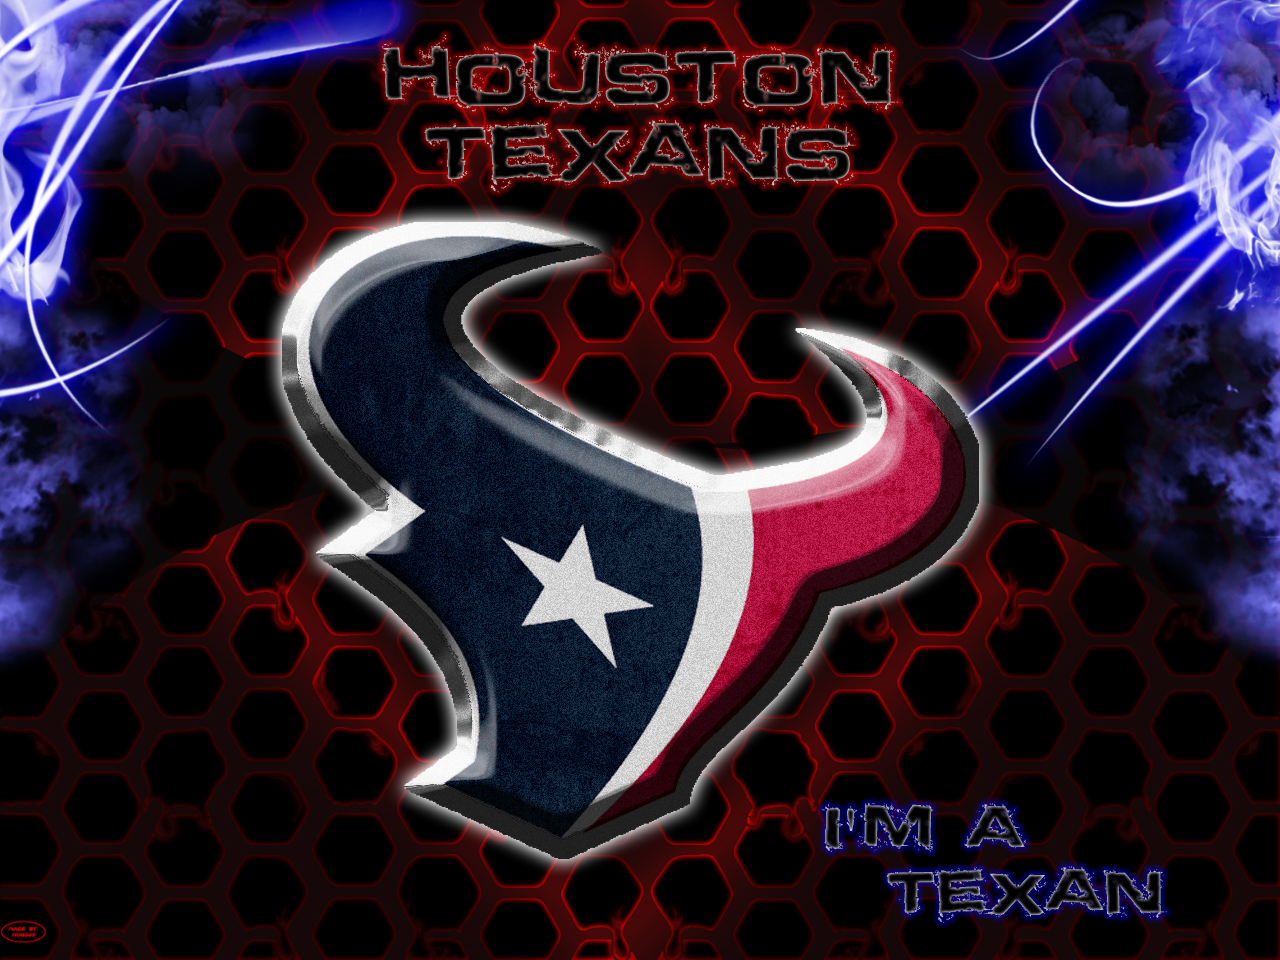 texans wallpaper im a texan jpg houston texans wallpaper houston 1280x960